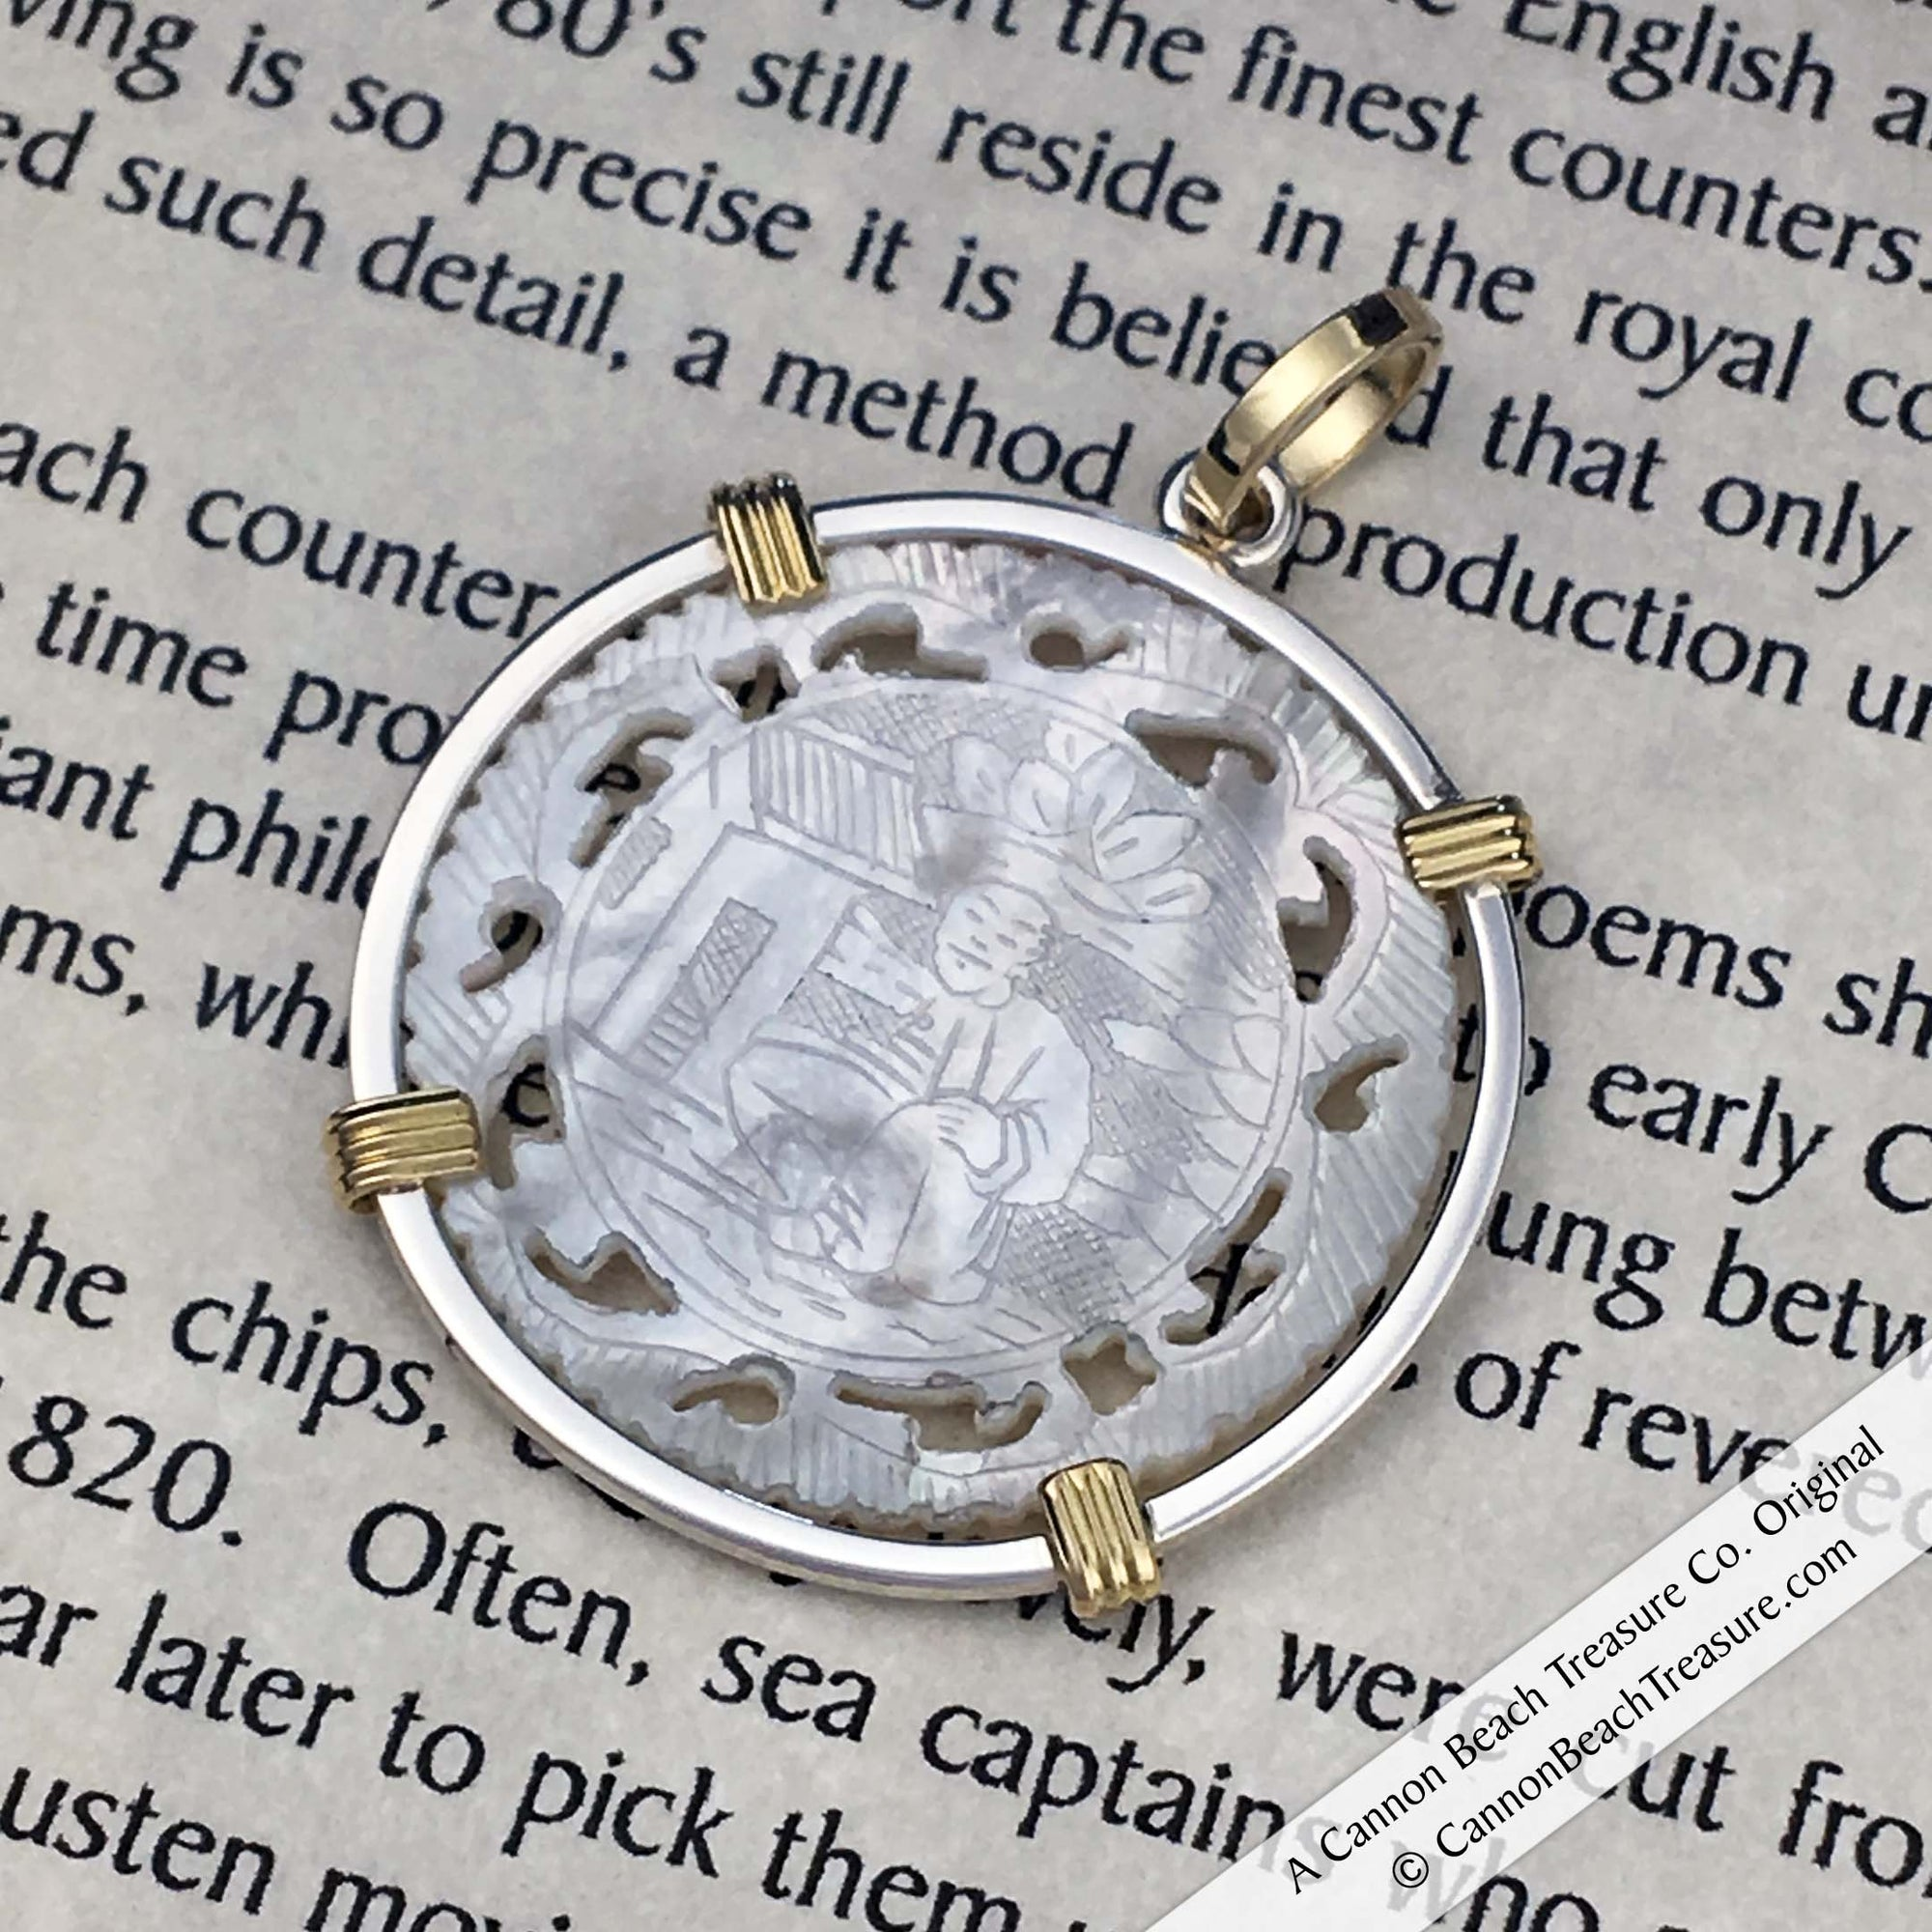 Round Pierced Mother of Pearl Gaming Counter Pendant in Sterling Silver & 18K Gold | Artifact #8234